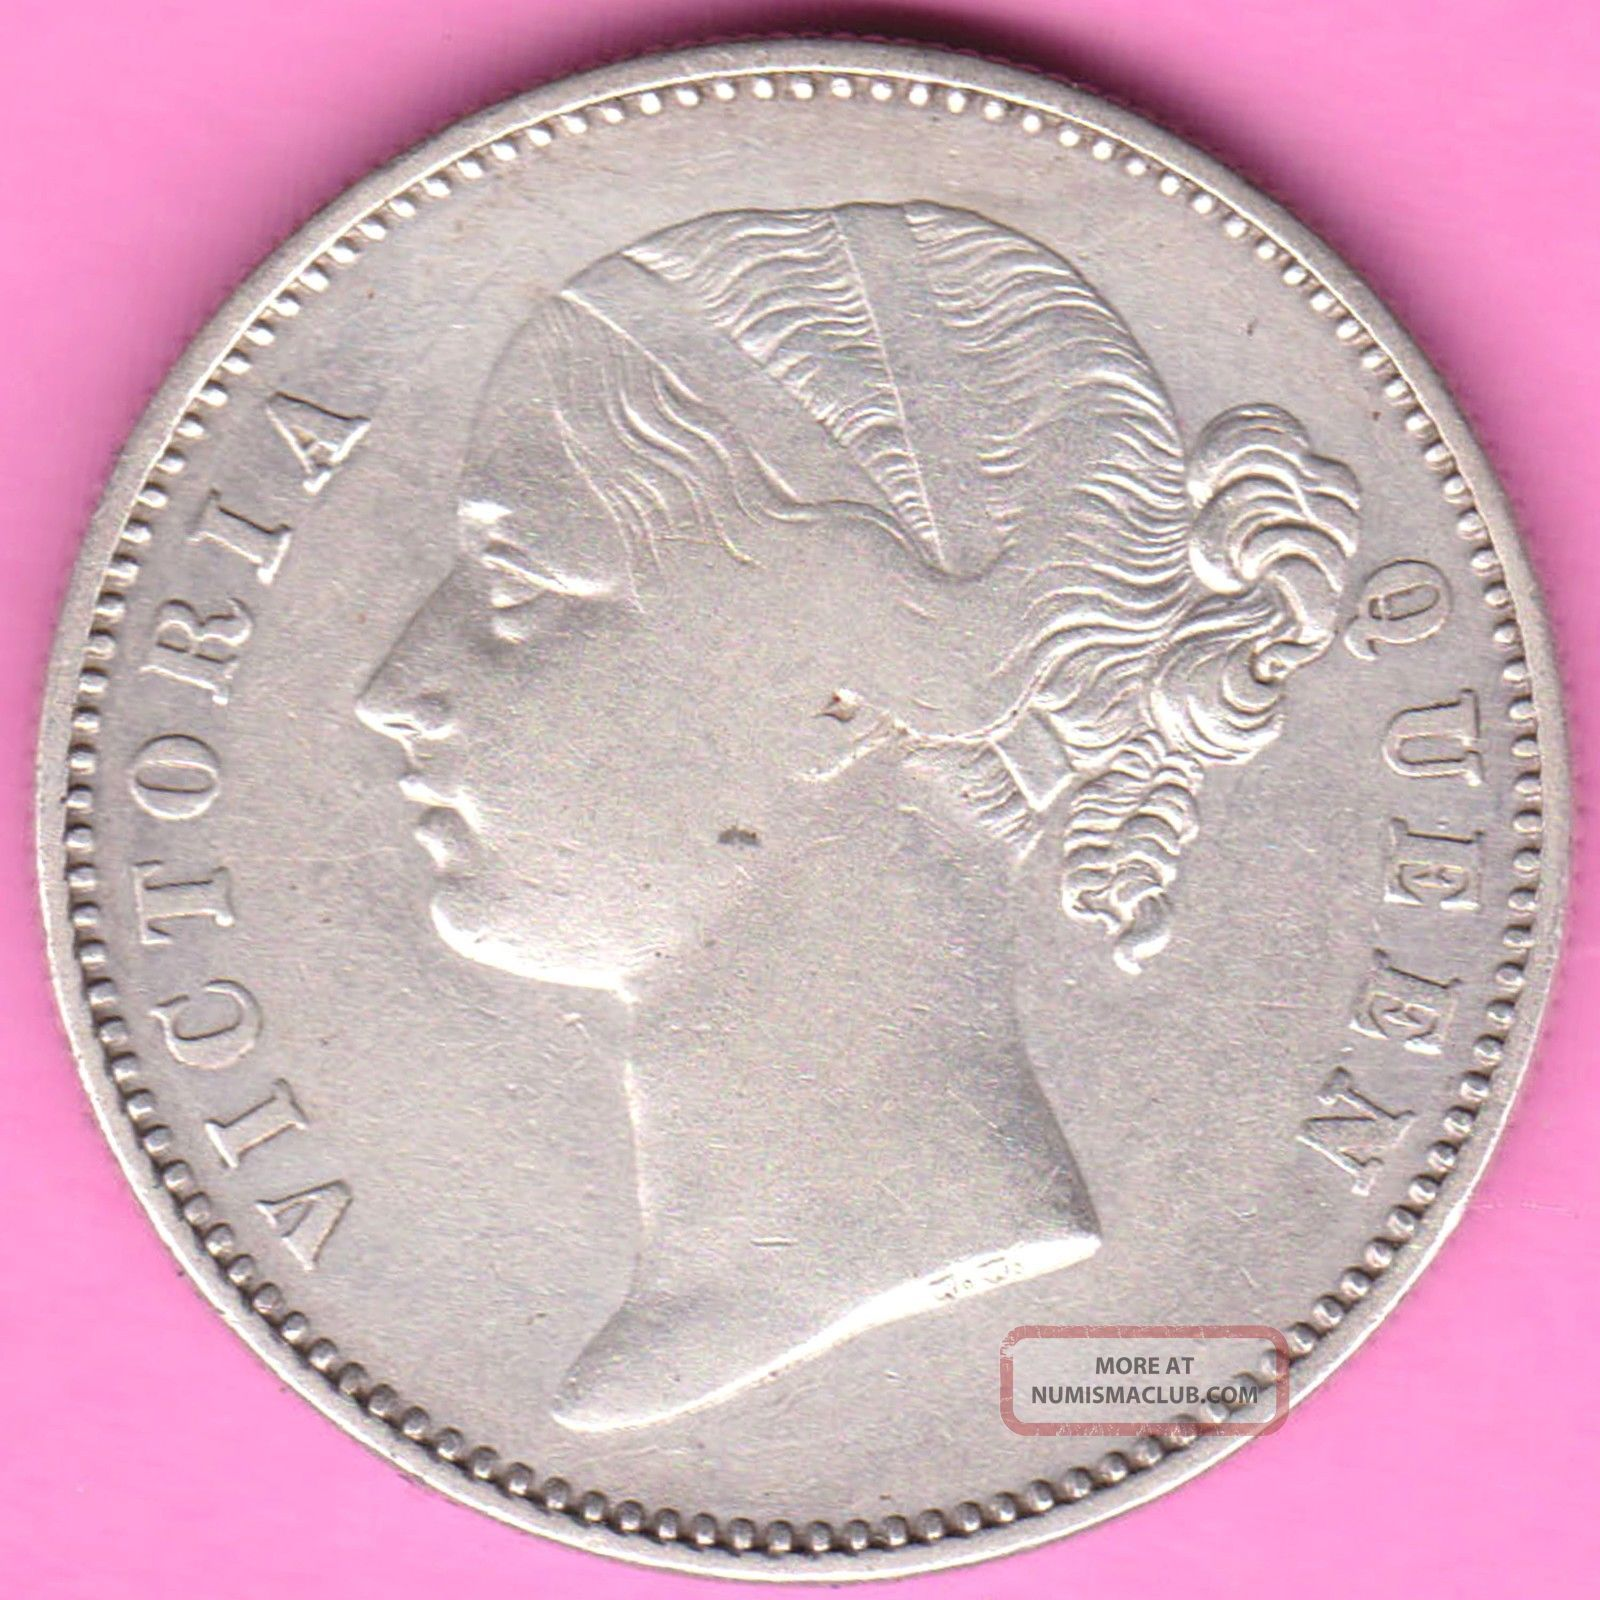 British India - 1840 - Divided Legend - One Rupee - Victoria - Rarest Silver Coin - 28 British photo